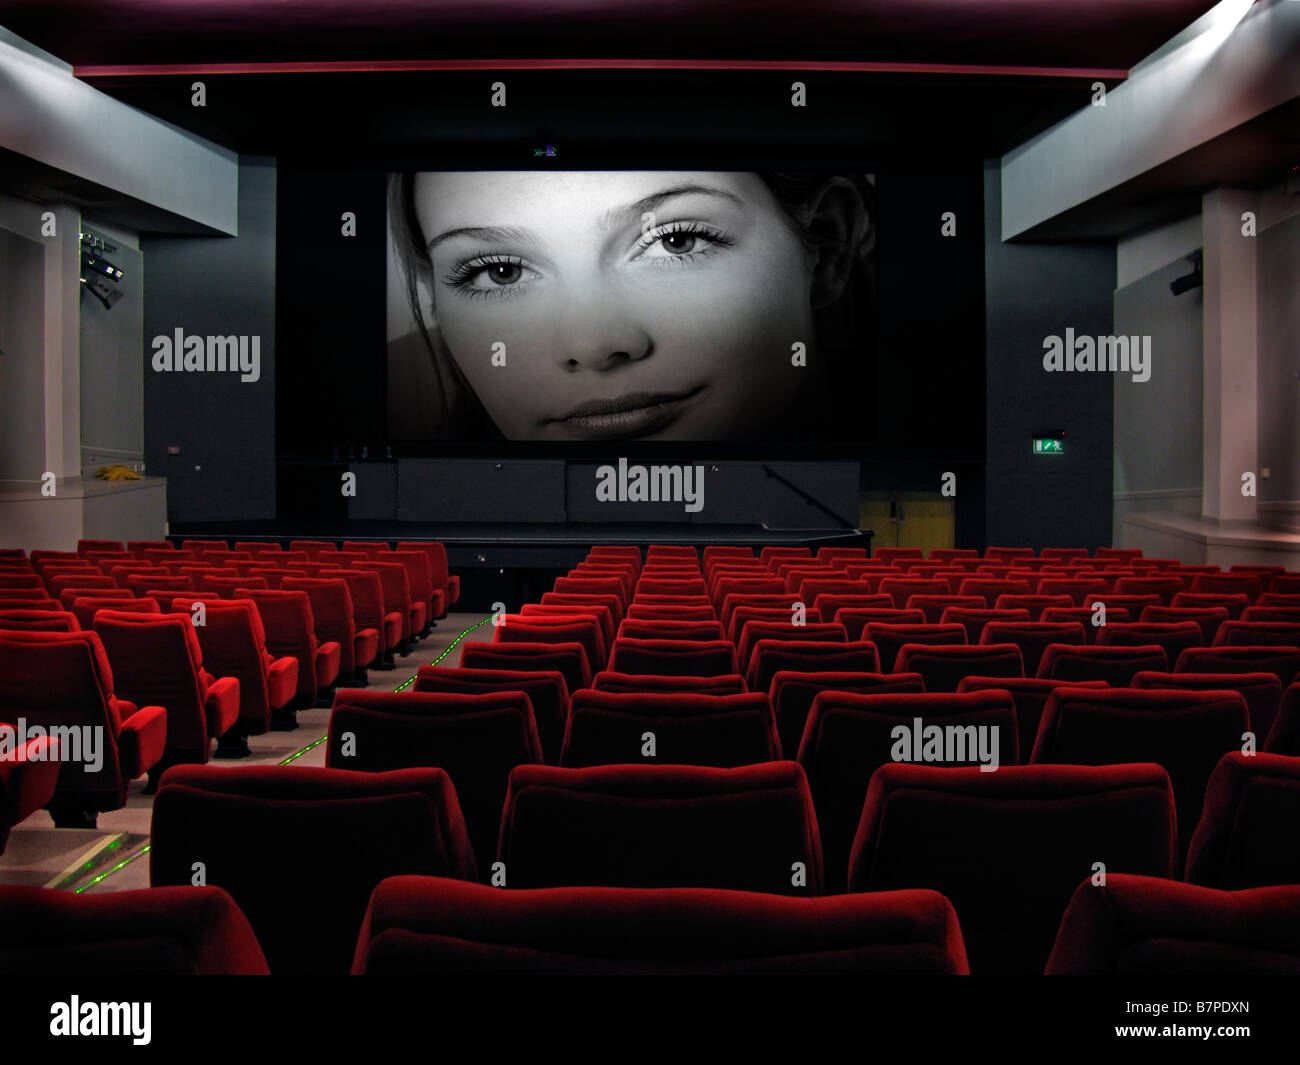 Cinema with film on screen - Stock Image